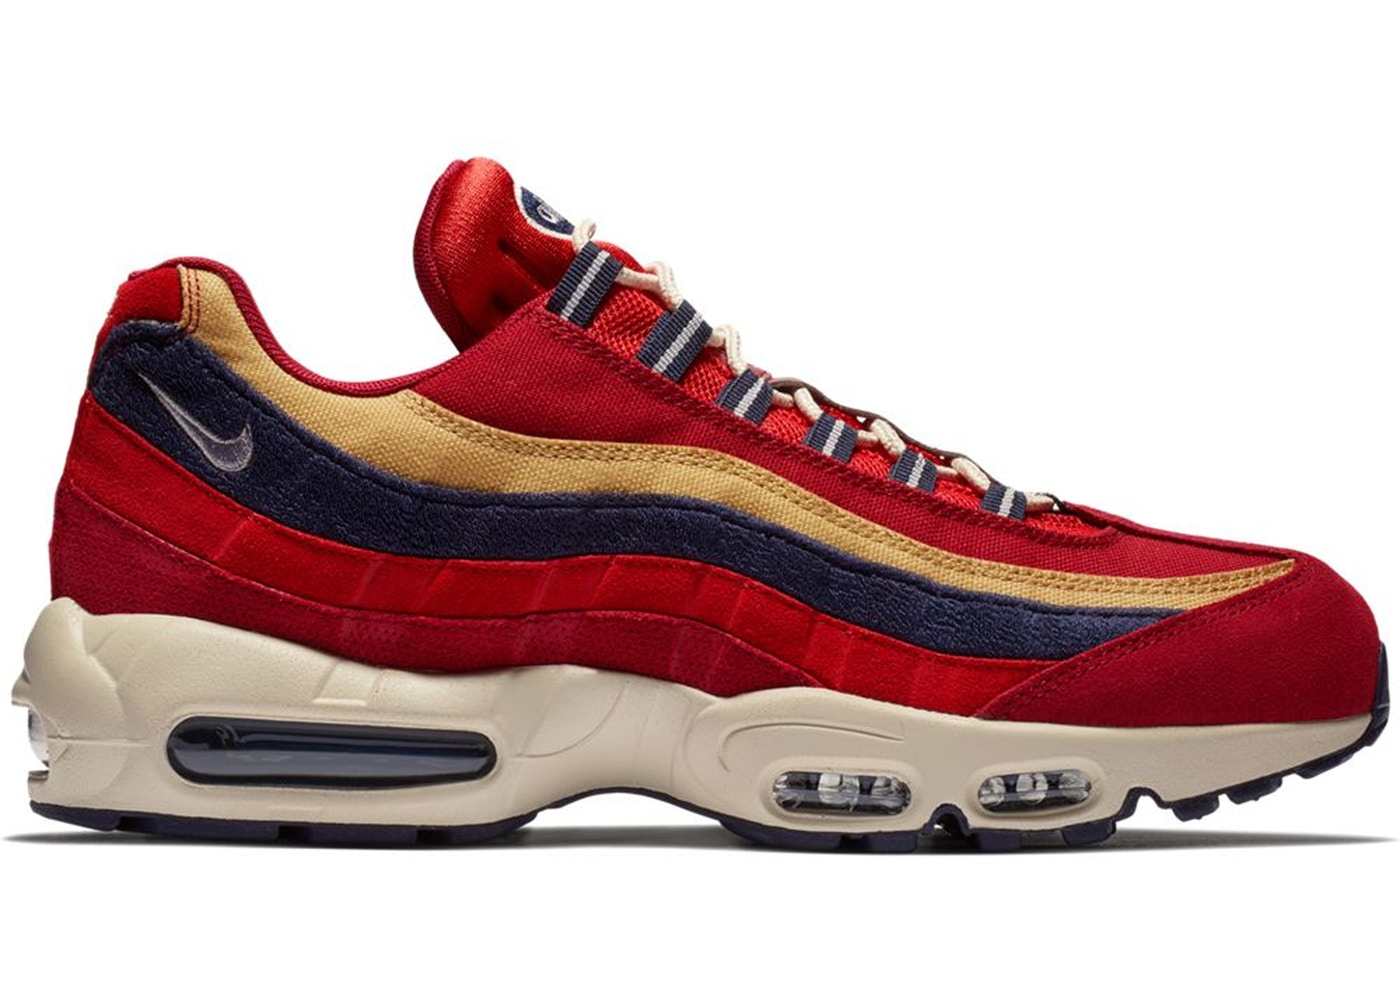 new style 623ef 87693 Sell. or Ask. Size 6. View All Bids. Air Max 95 Red ...